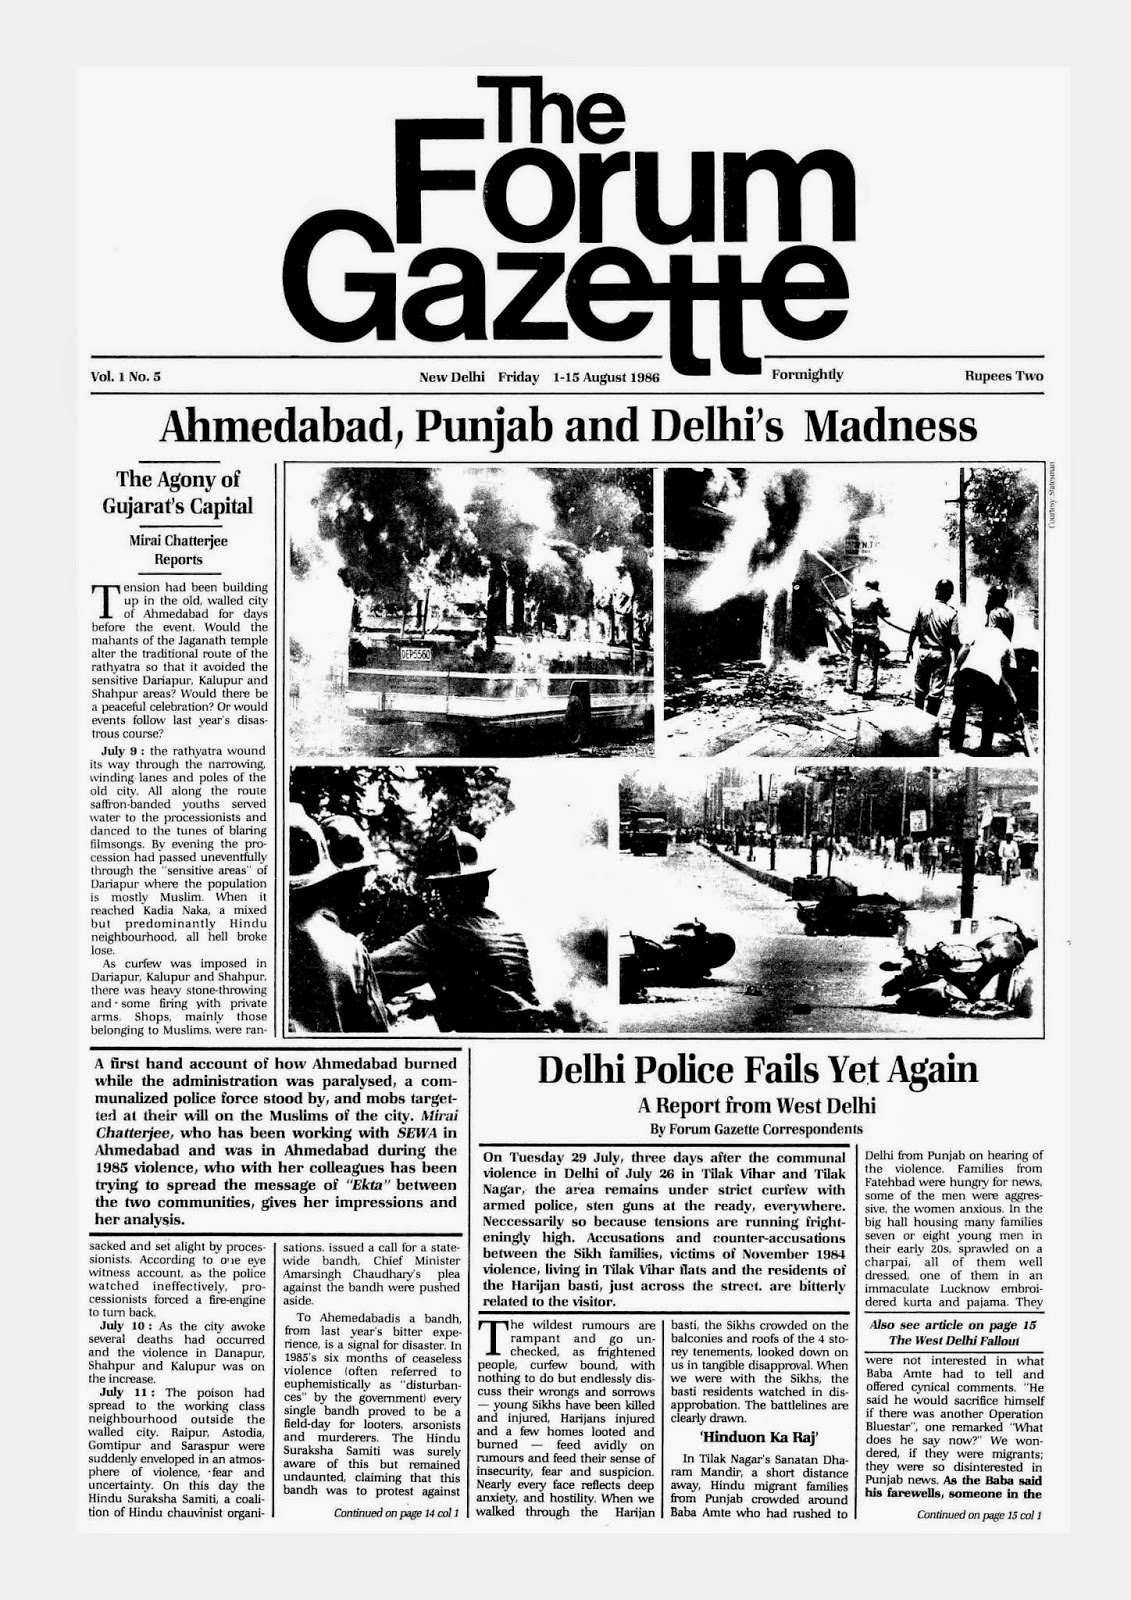 http://sikhdigitallibrary.blogspot.com/2015/04/the-forum-gazette-vol-1-no-5-august-1.html